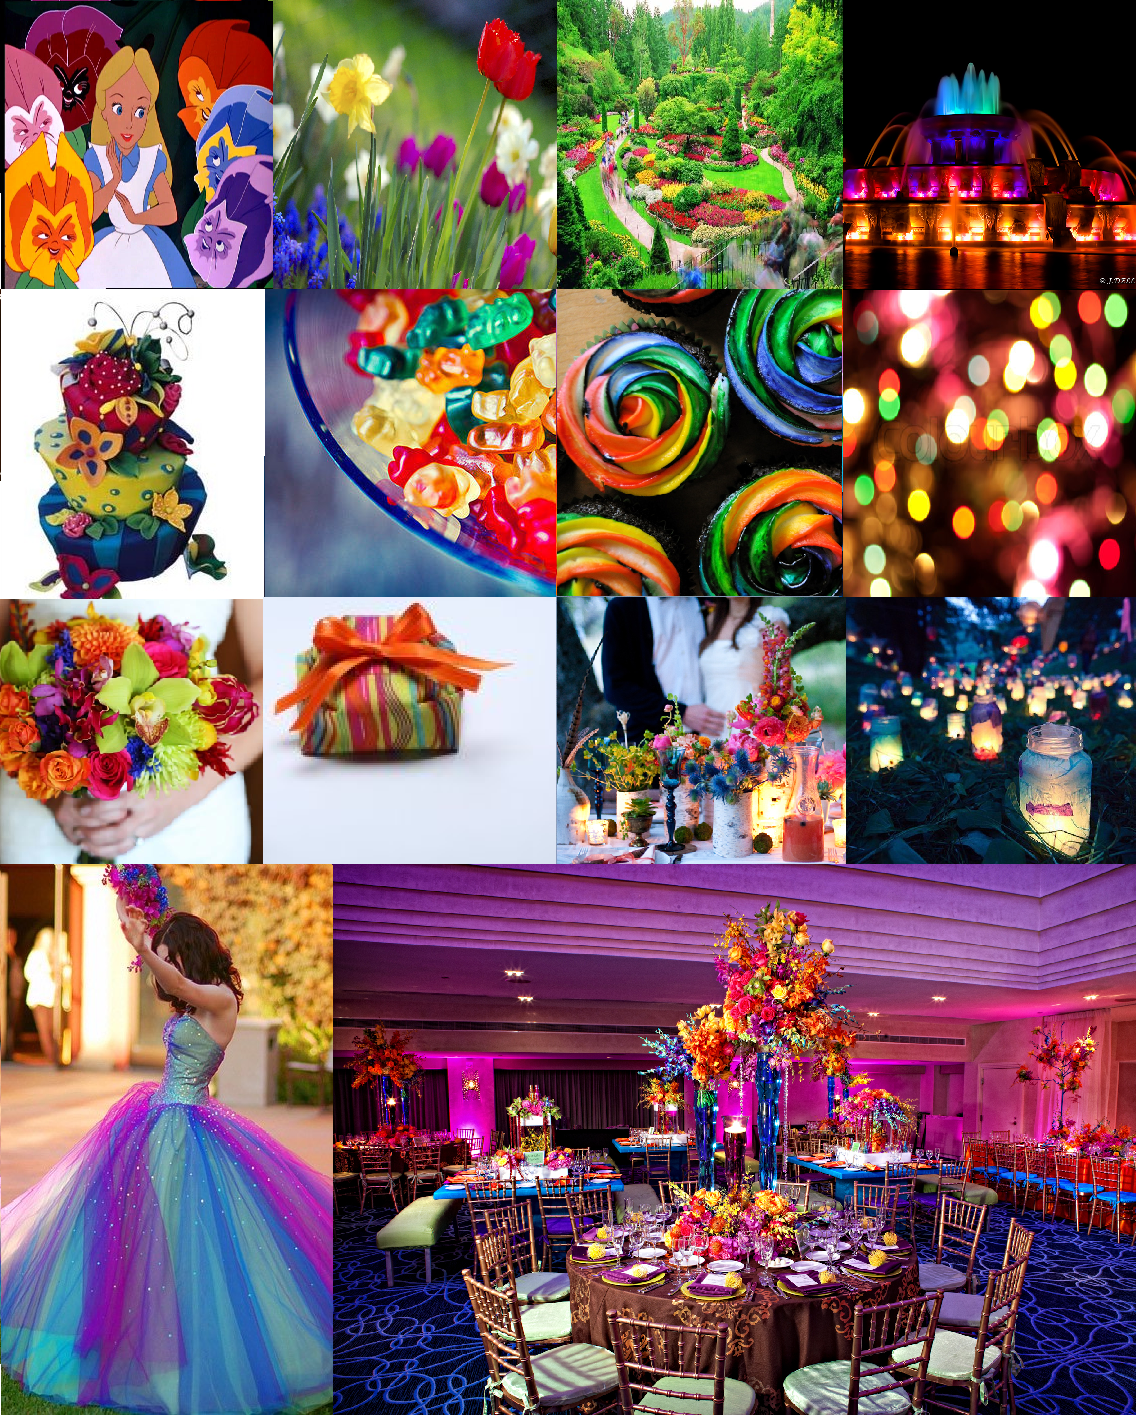 A Magical Wedding Guide: Inspiration For A Colorful Garden